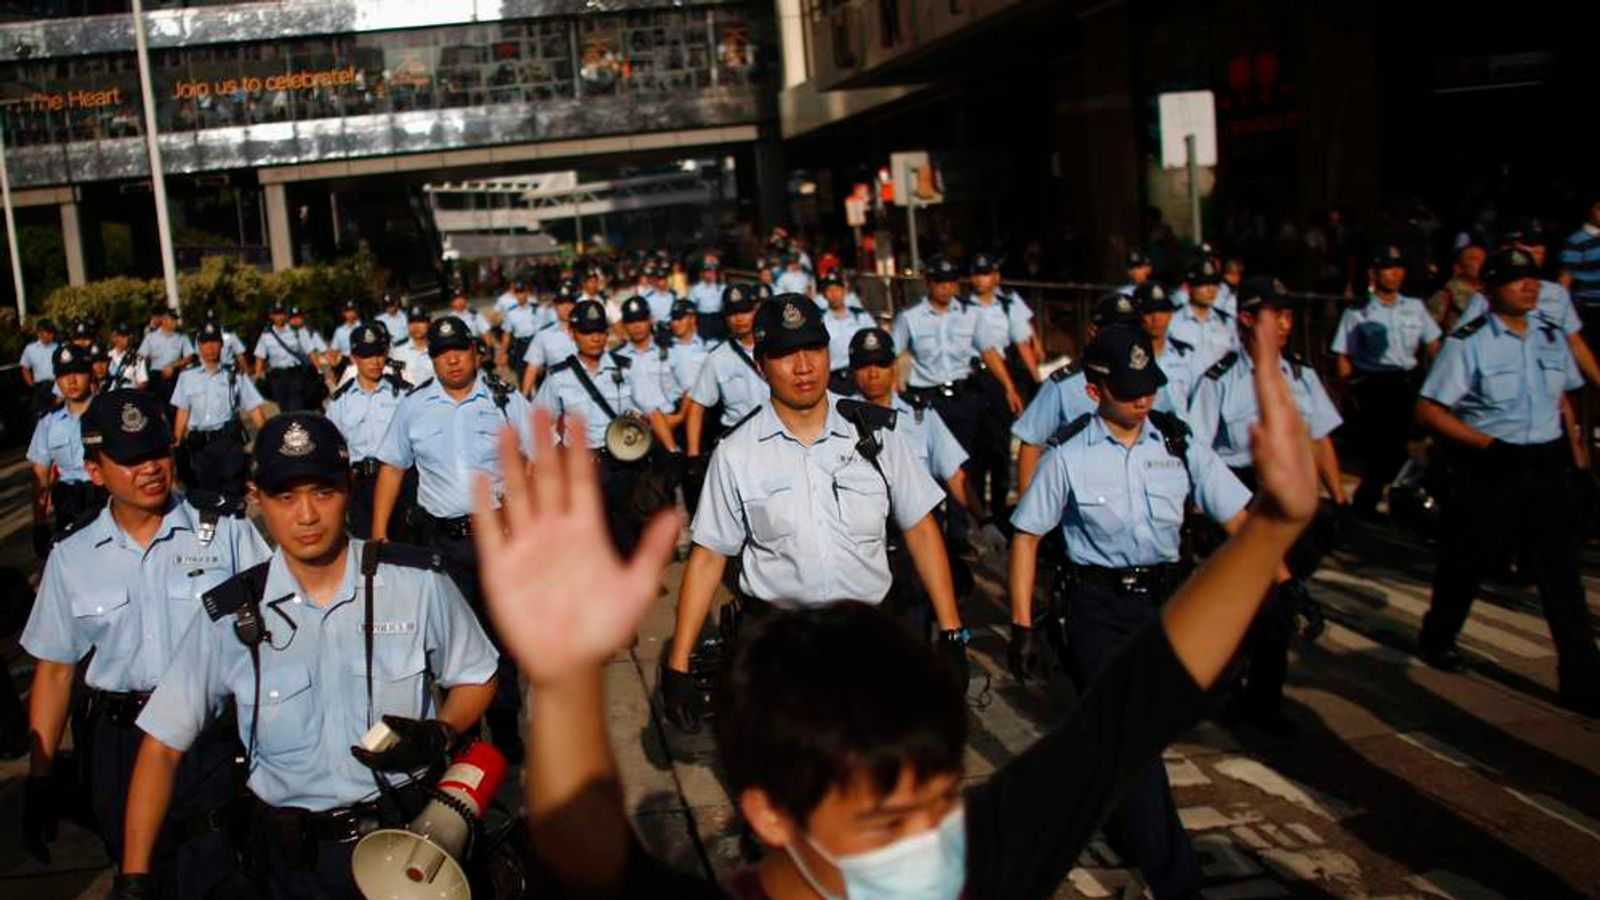 A protester raises his arms as police officers try to disperse the crowd near the government headquarters in Hong Kong